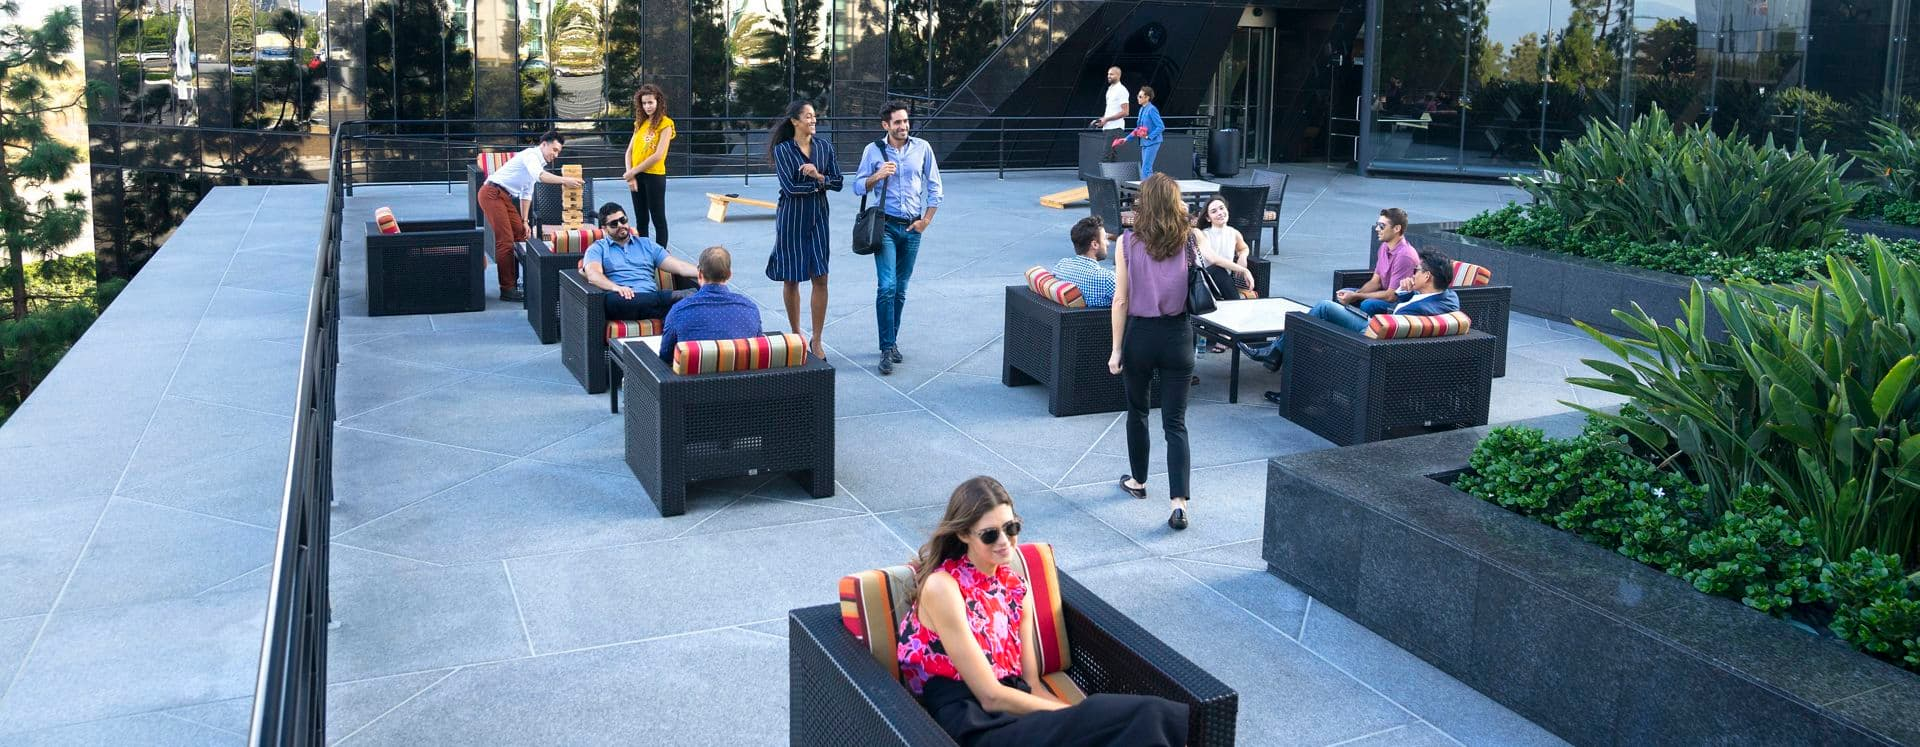 Photography of Outdoor Workspace at Newport Gateway, Irvine, Ca